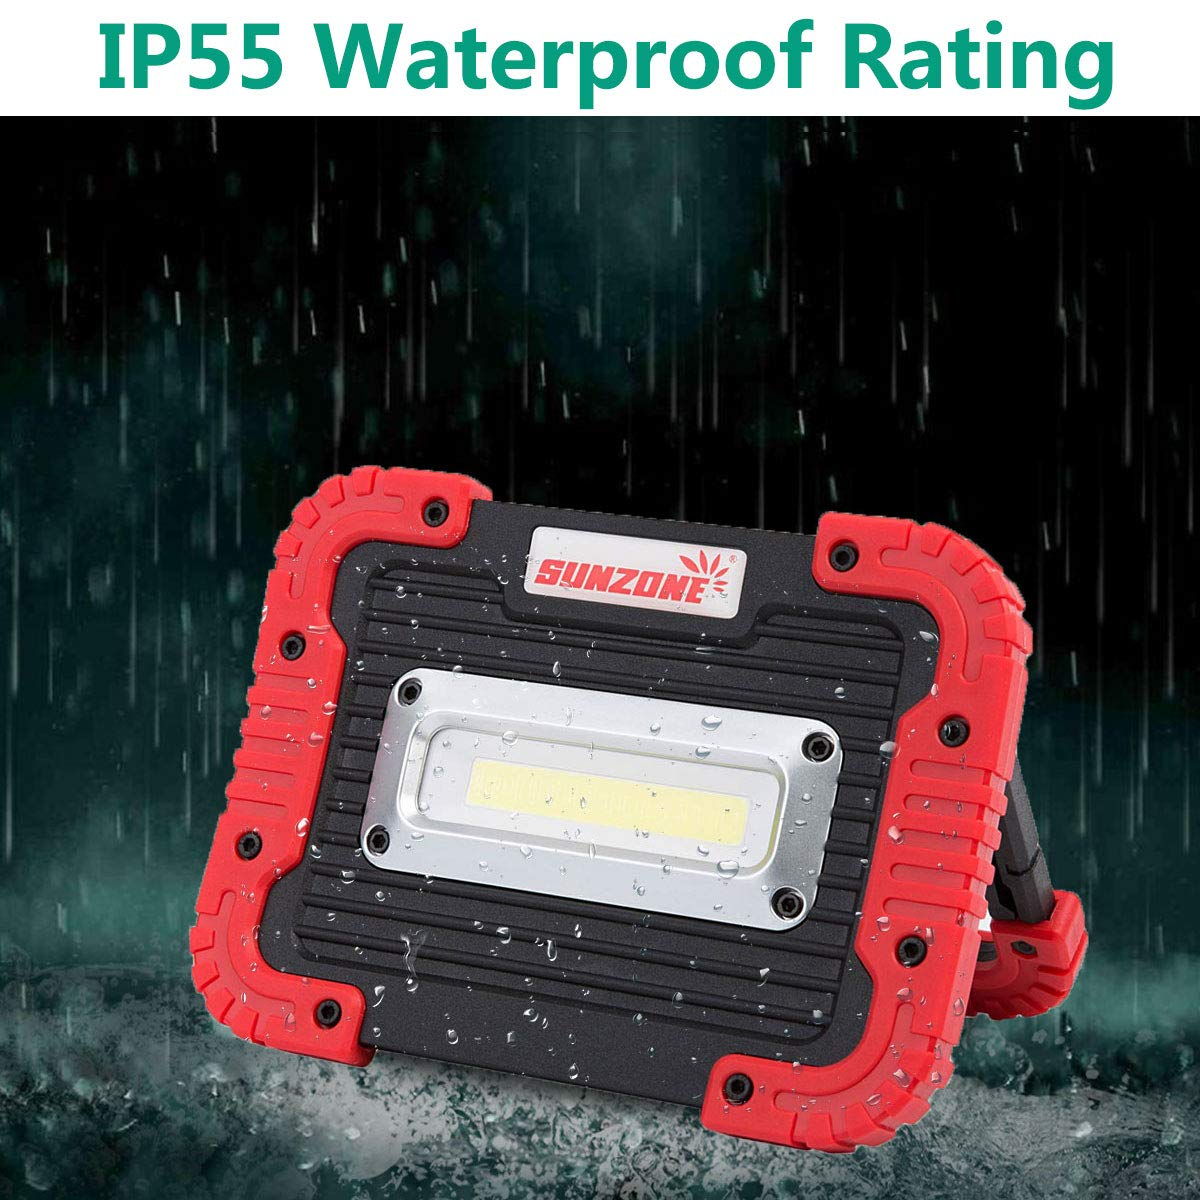 Portable LED Spotlight Work Light Camping Flood Security Lights Built-in  Rechargeable 18650 Battery IP55 Waterproof Power Bank COB Light with SOS  Mode